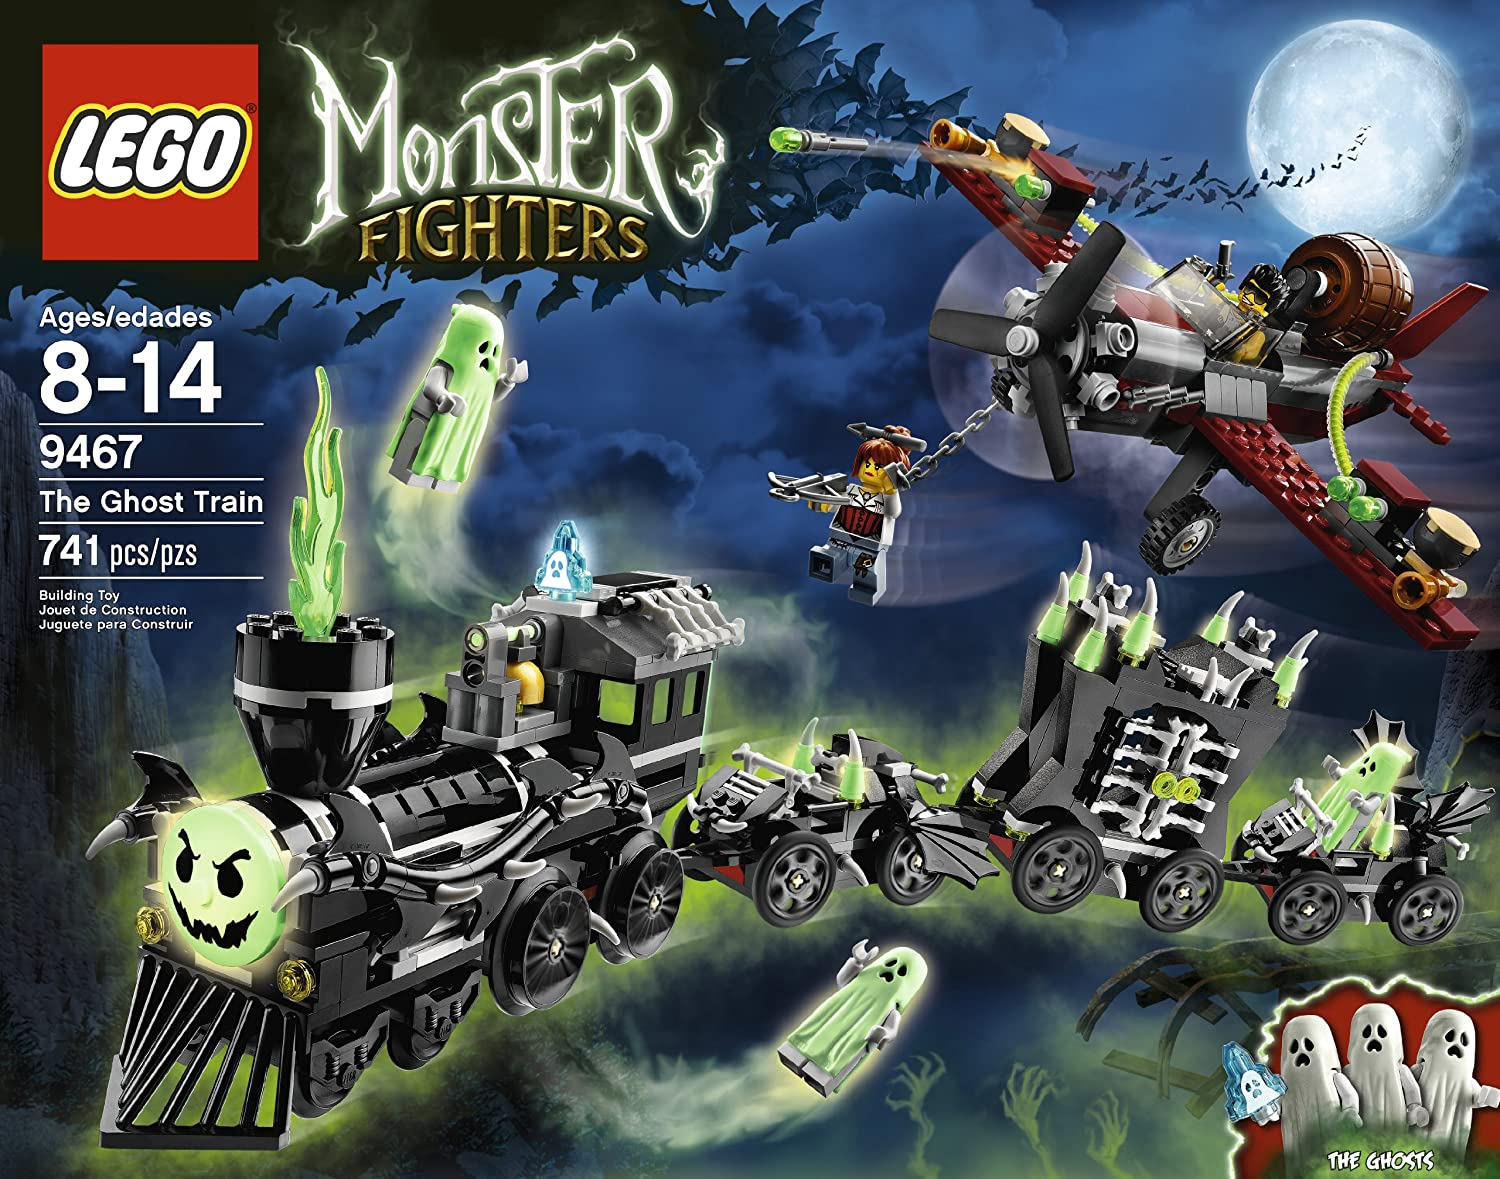 Amazon.com: LEGO Monster Fighters 9467 The Ghost Train: Toys & Games